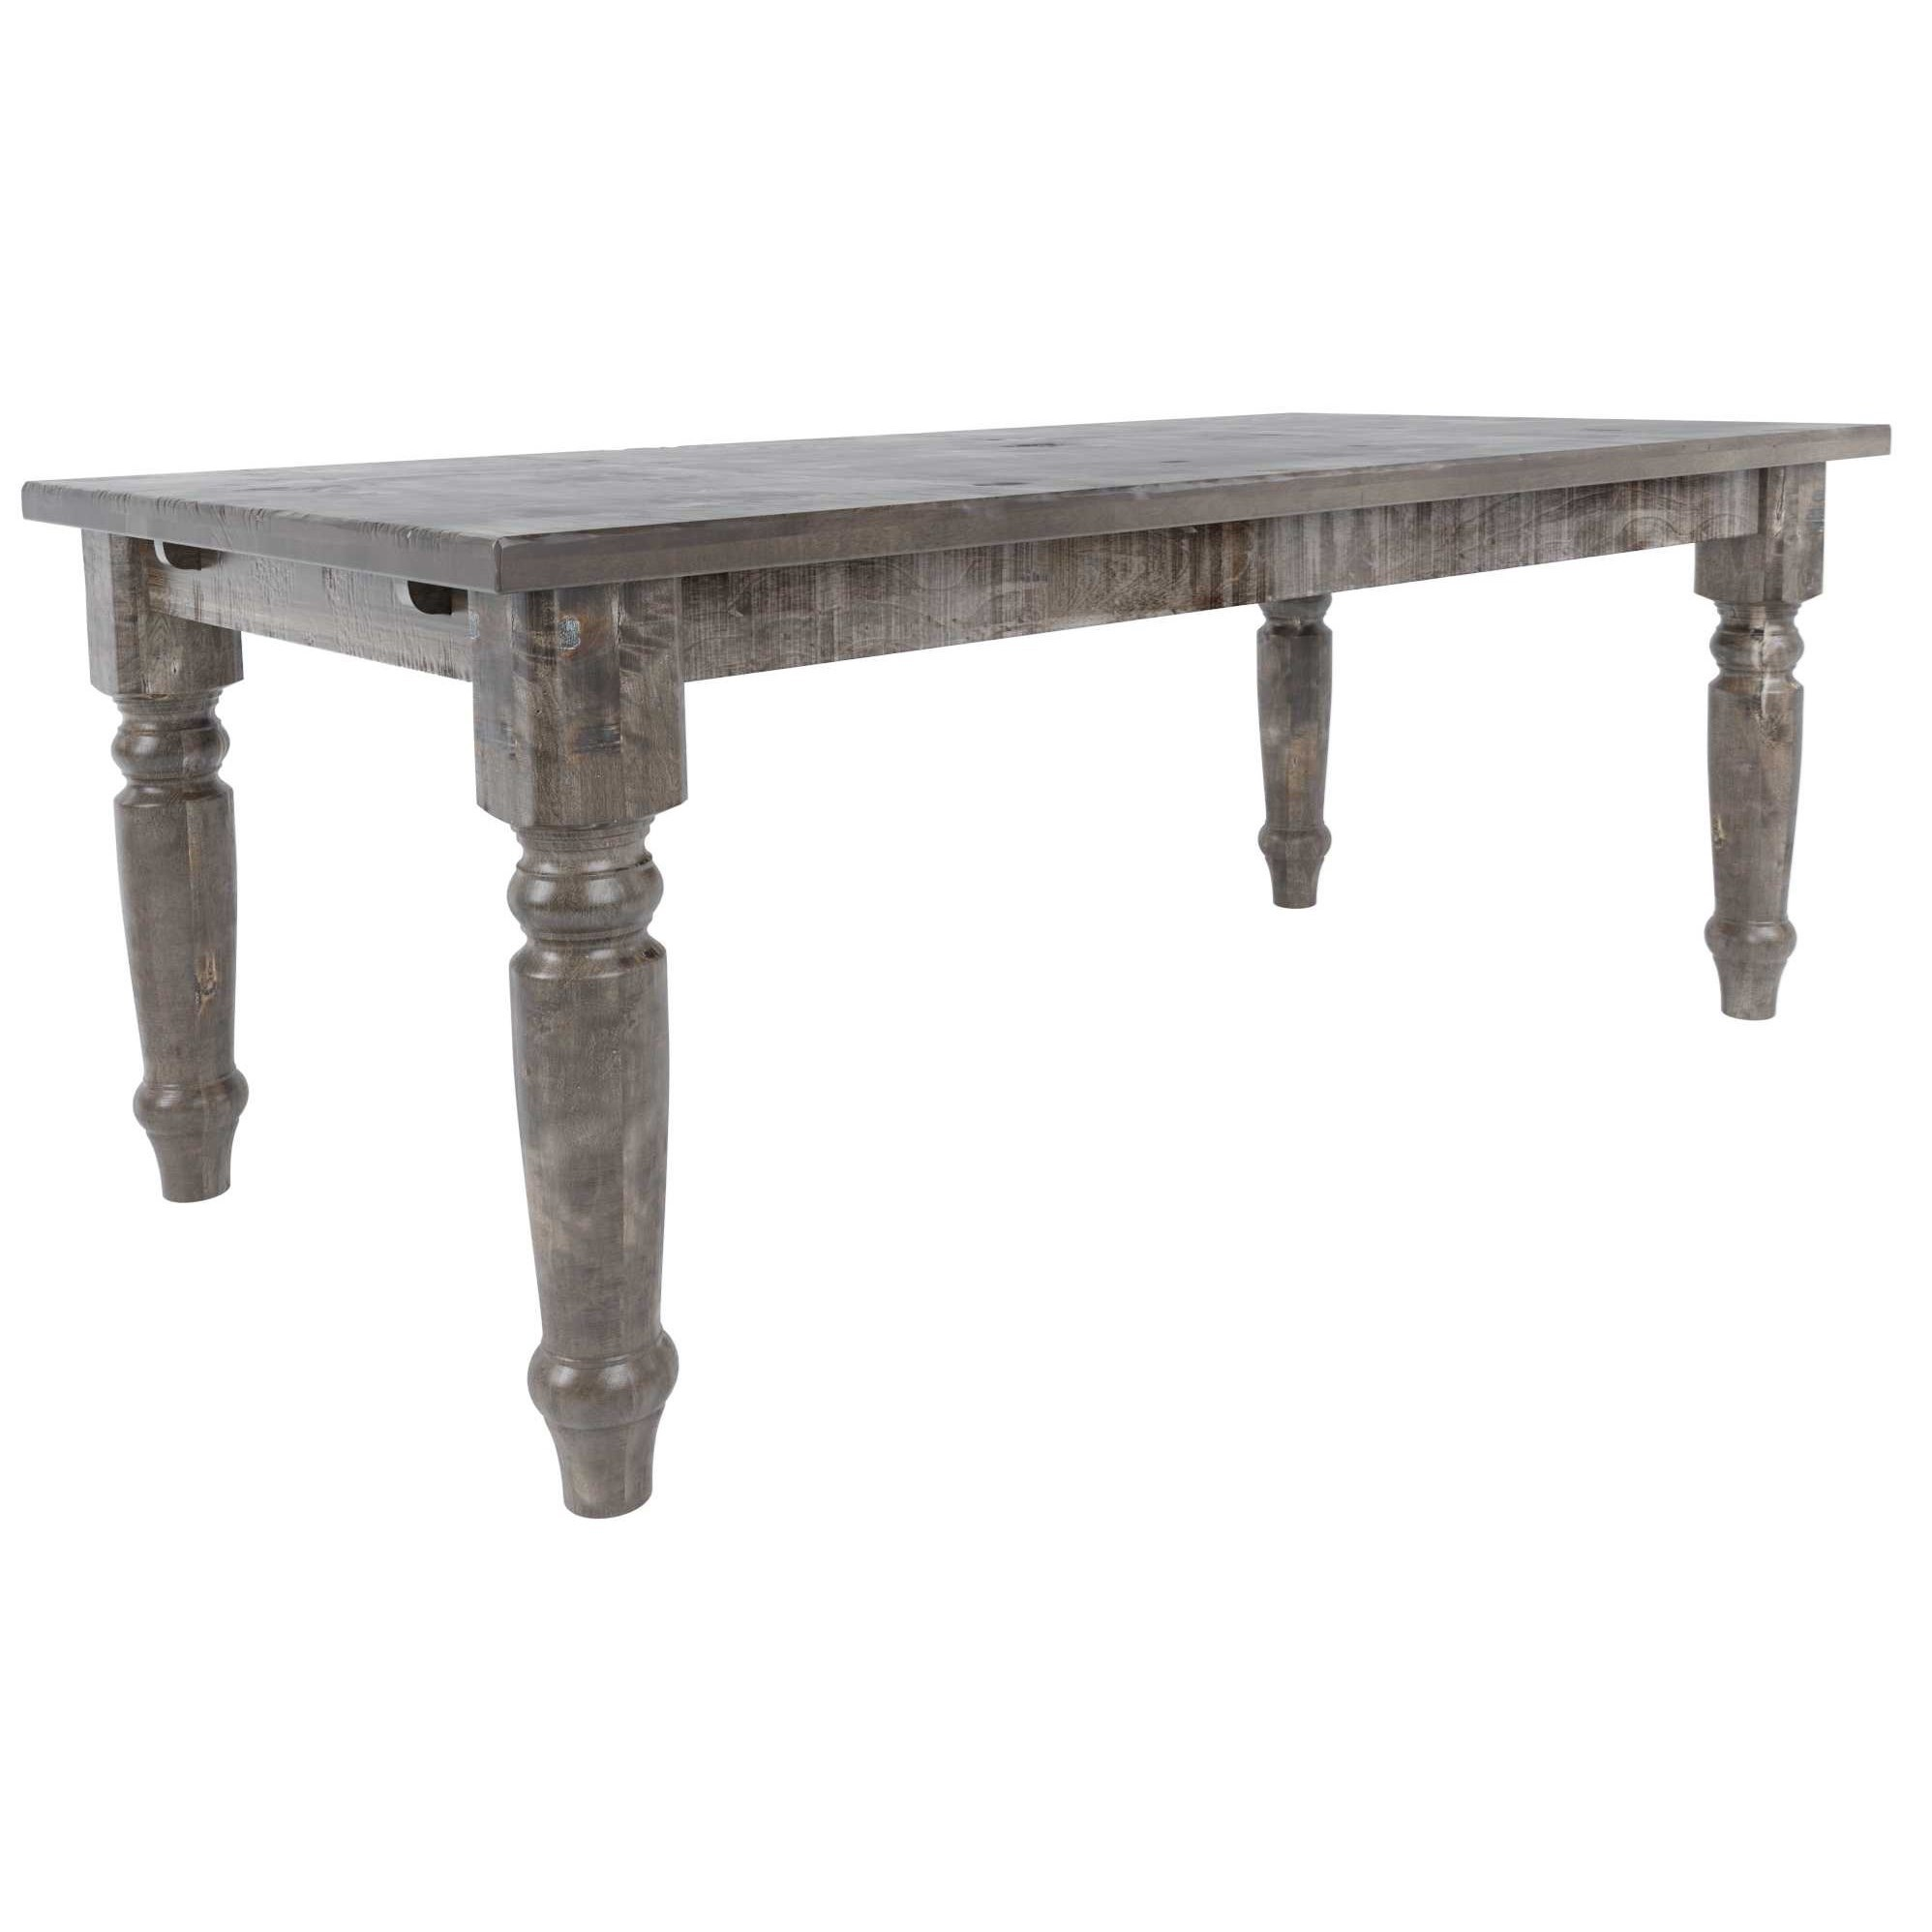 Champlain - Custom Dining Customizable Rectangular Wood Top Table by Canadel at Jordan's Home Furnishings